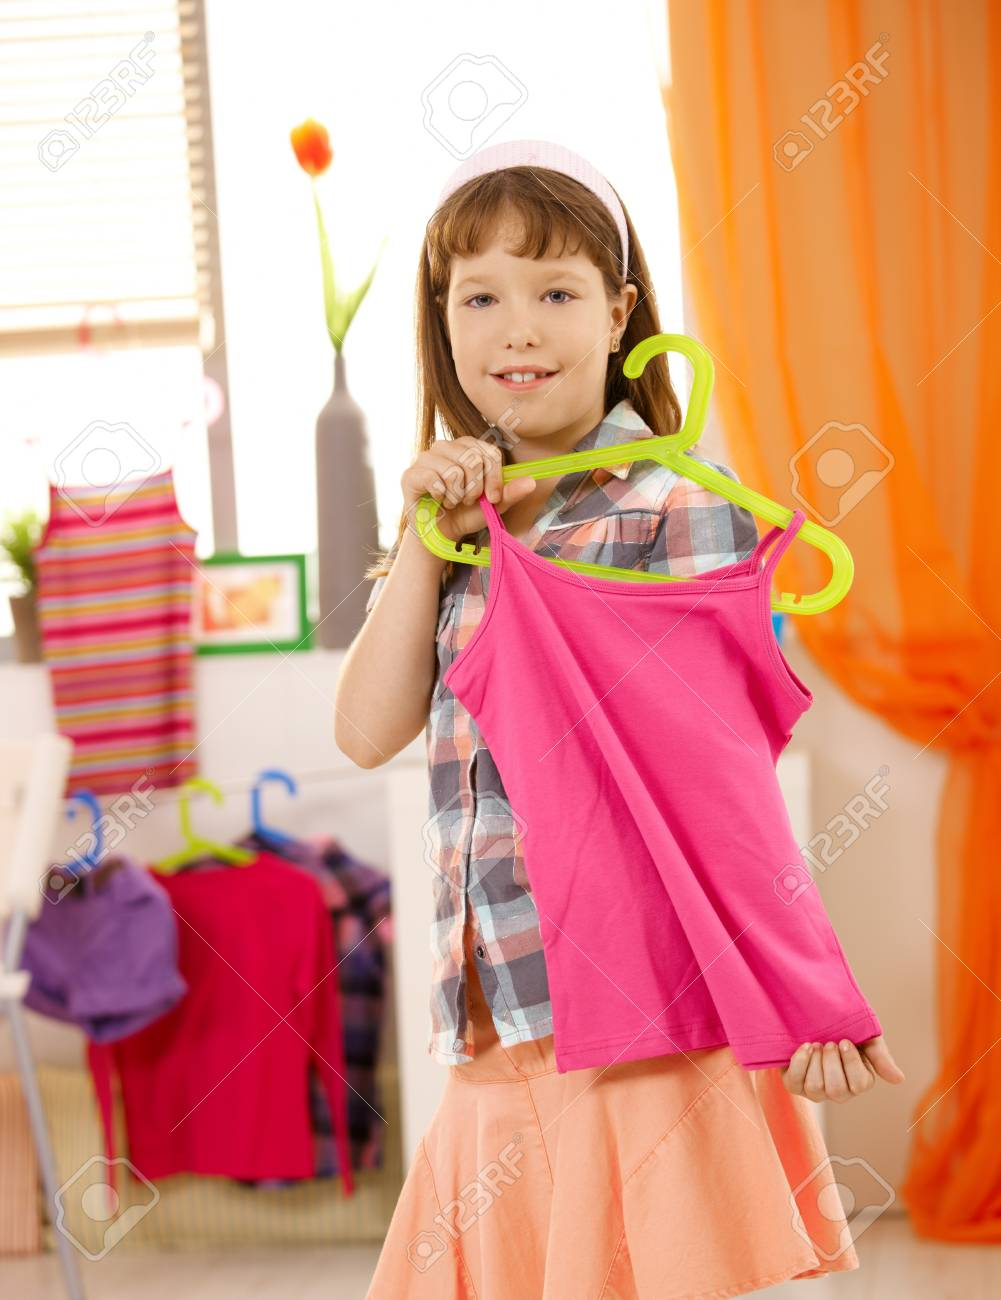 Schoolgirl showing nice top on hanger, smiling at camera. Stock Photo - 7899233